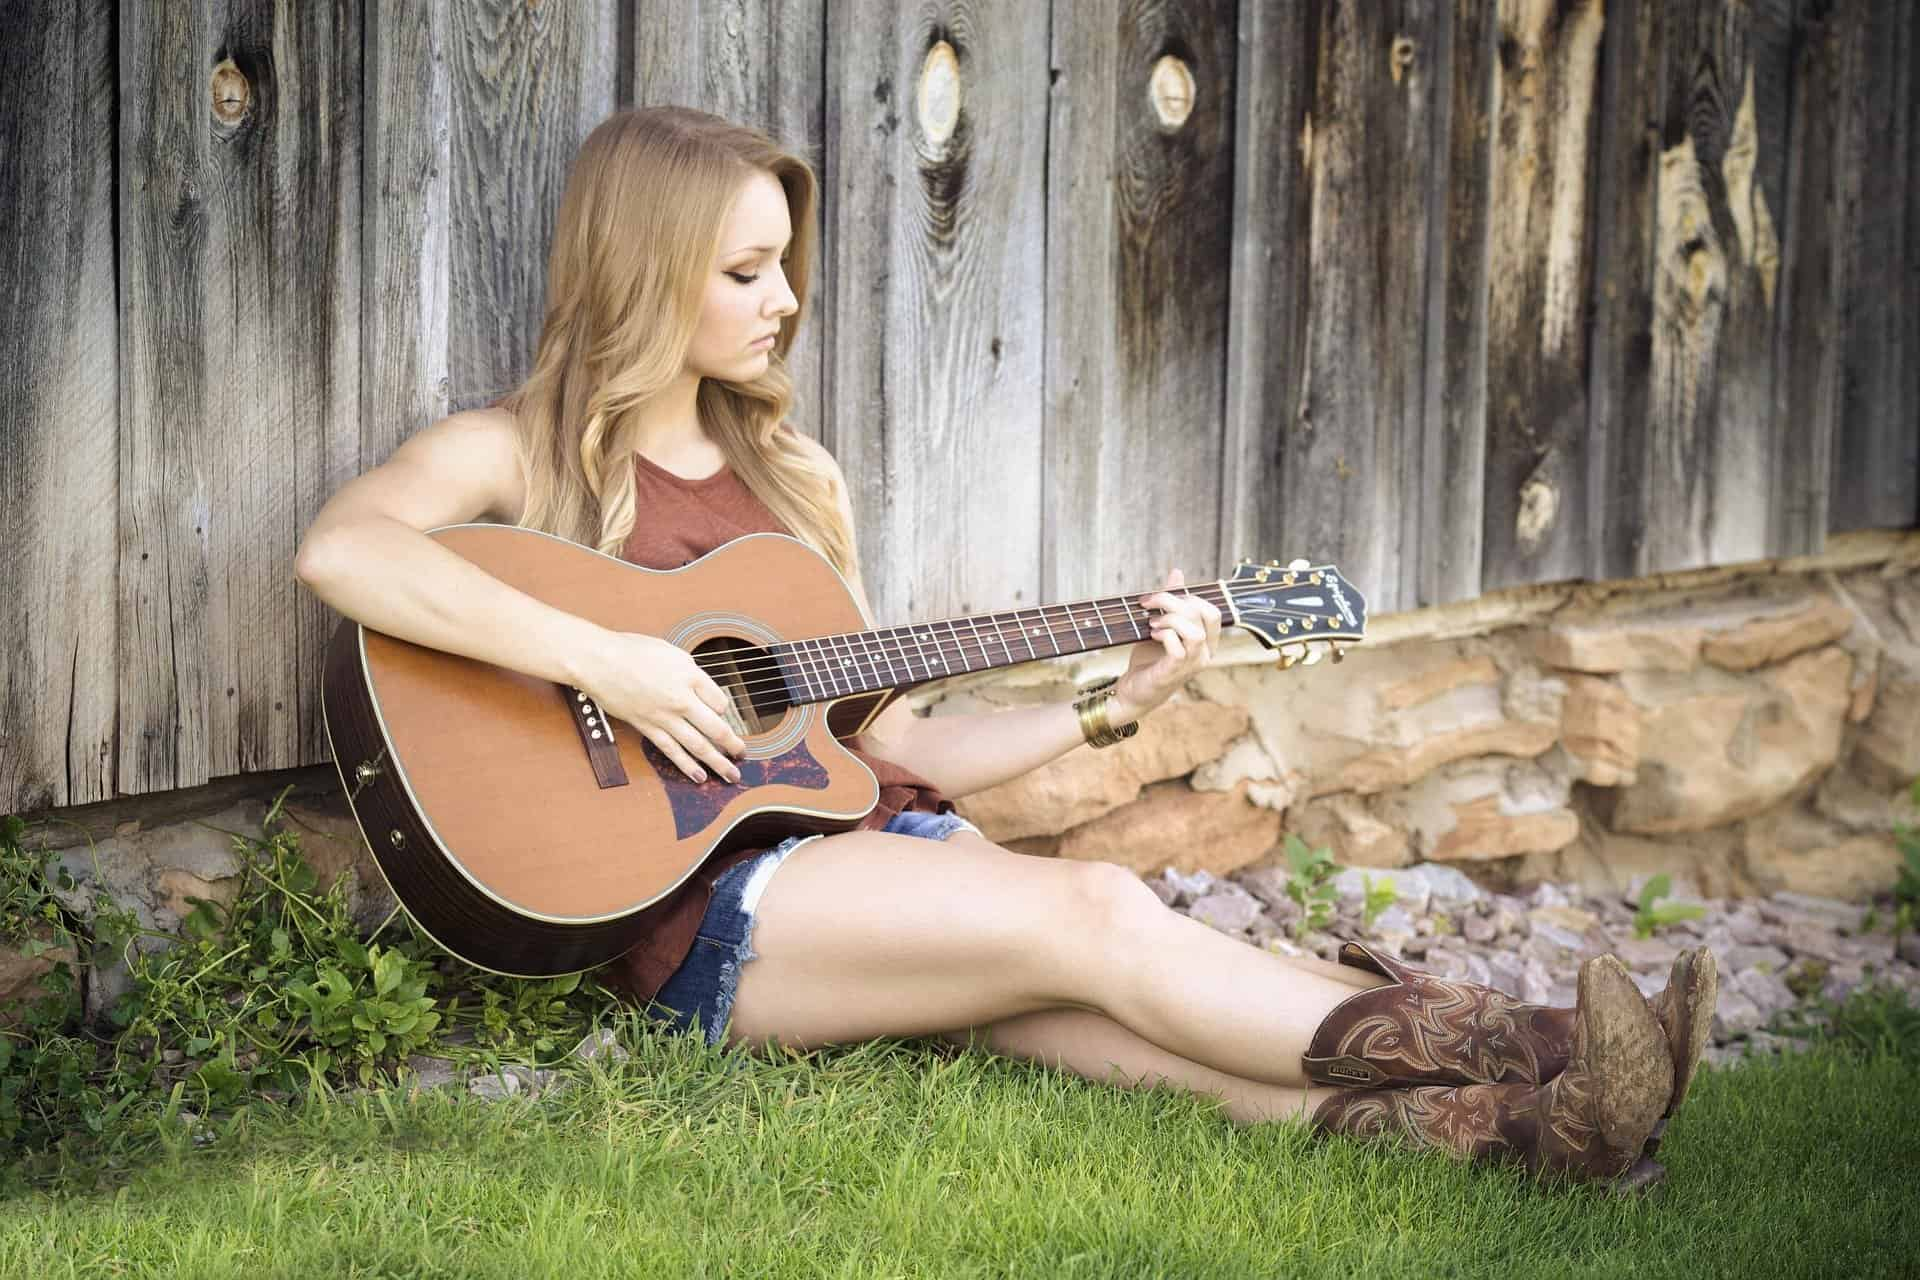 a girl playing guitar outside